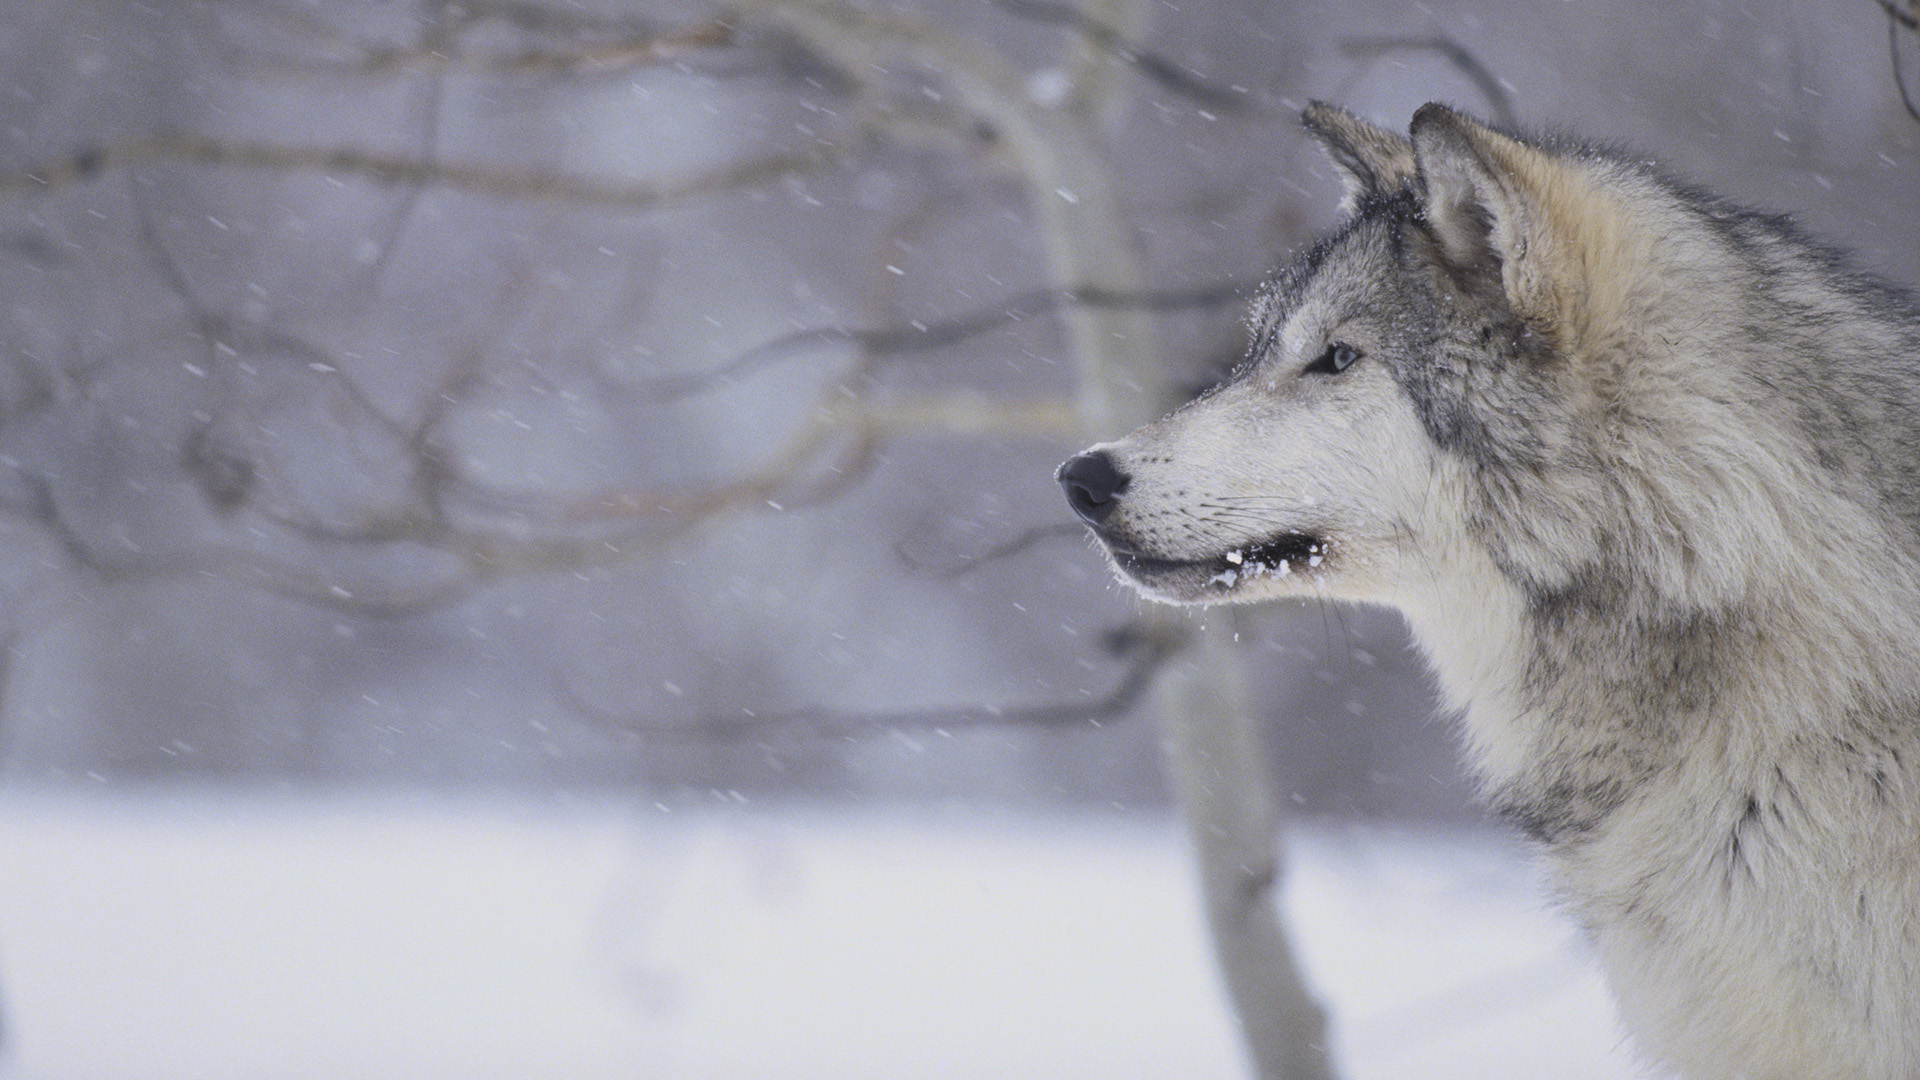 Gray wolf in snow tweet hd wallpapers animals photo gray wolf hd